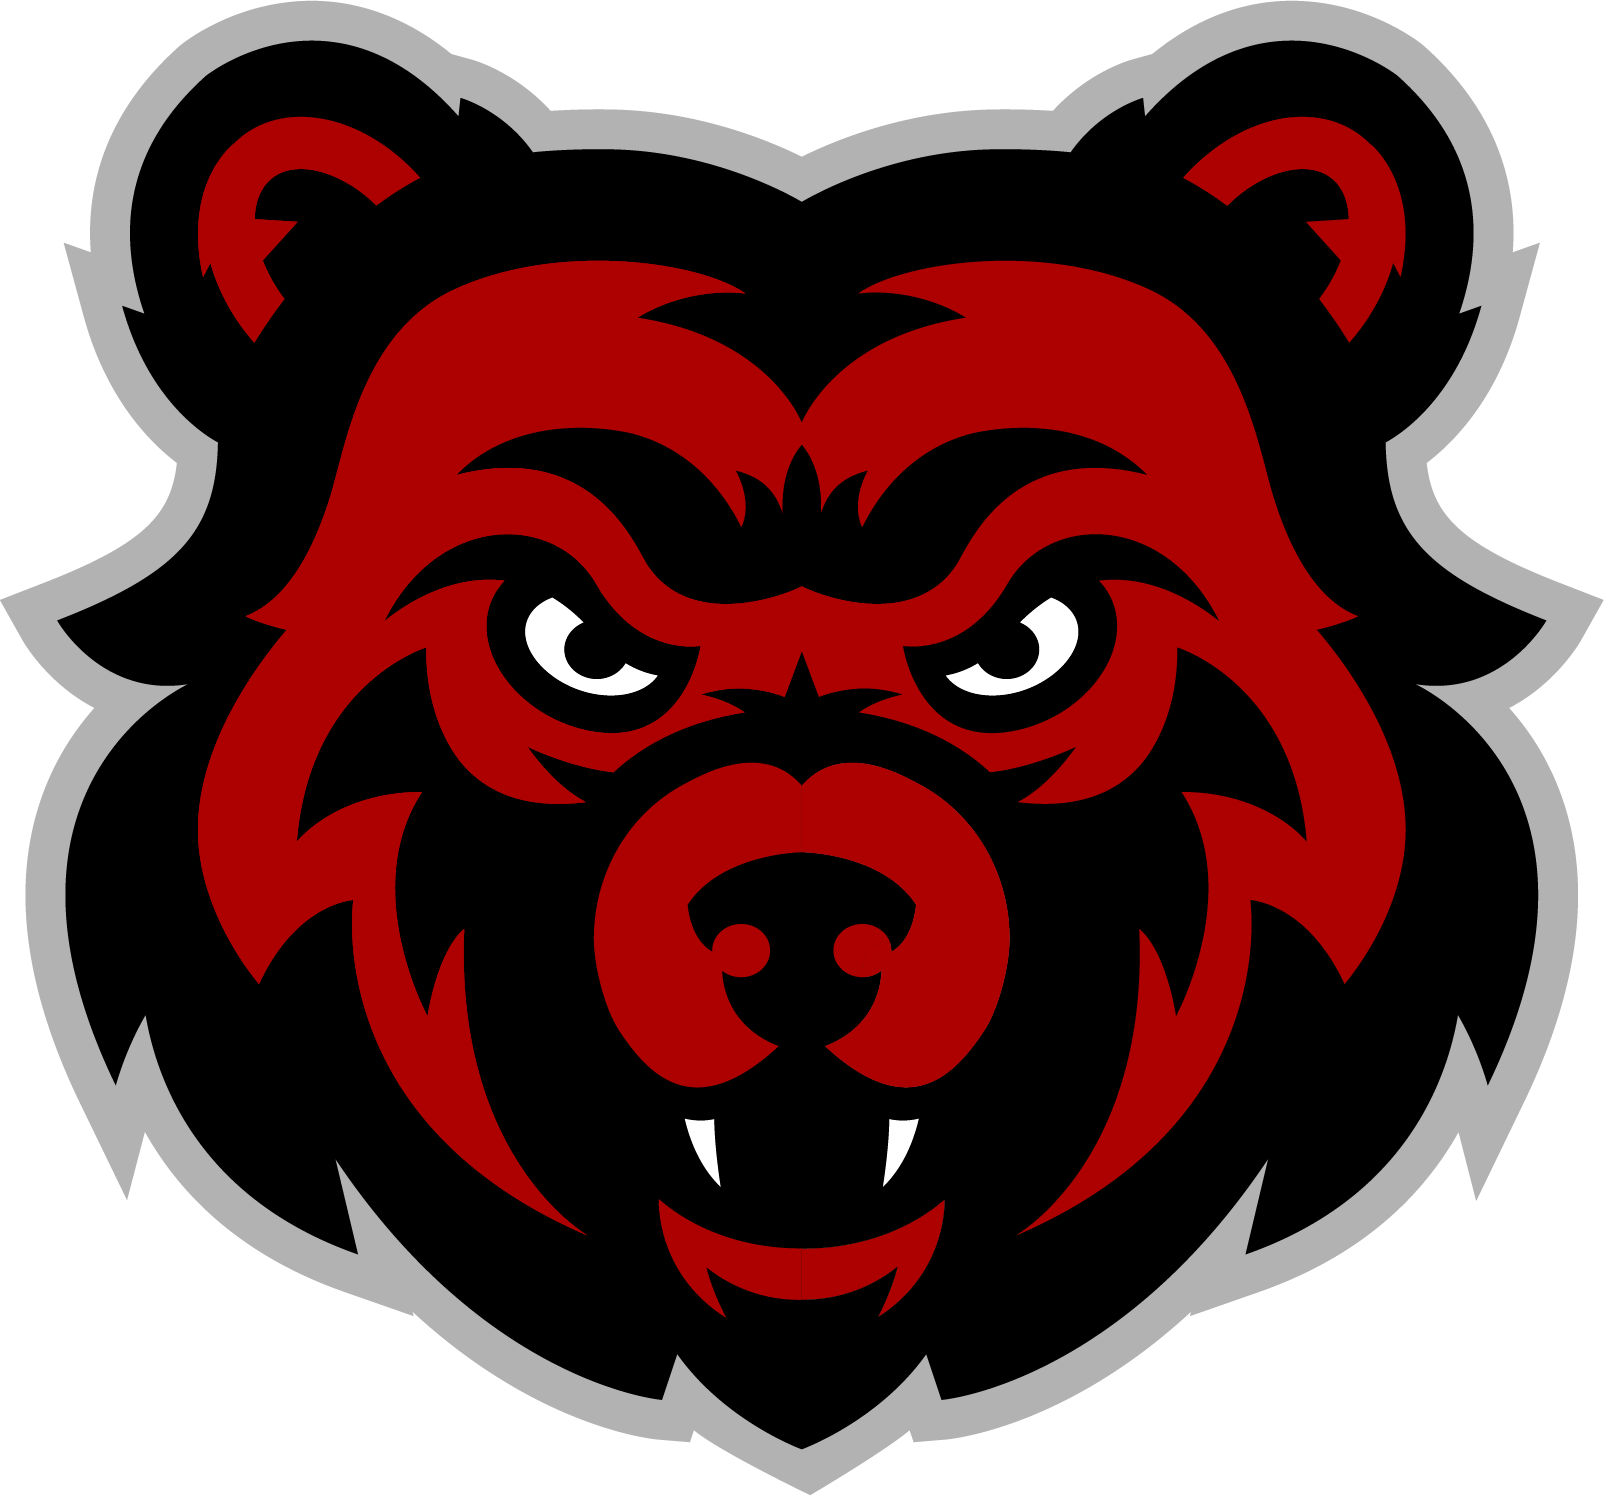 Park City Elementary logo of black bear